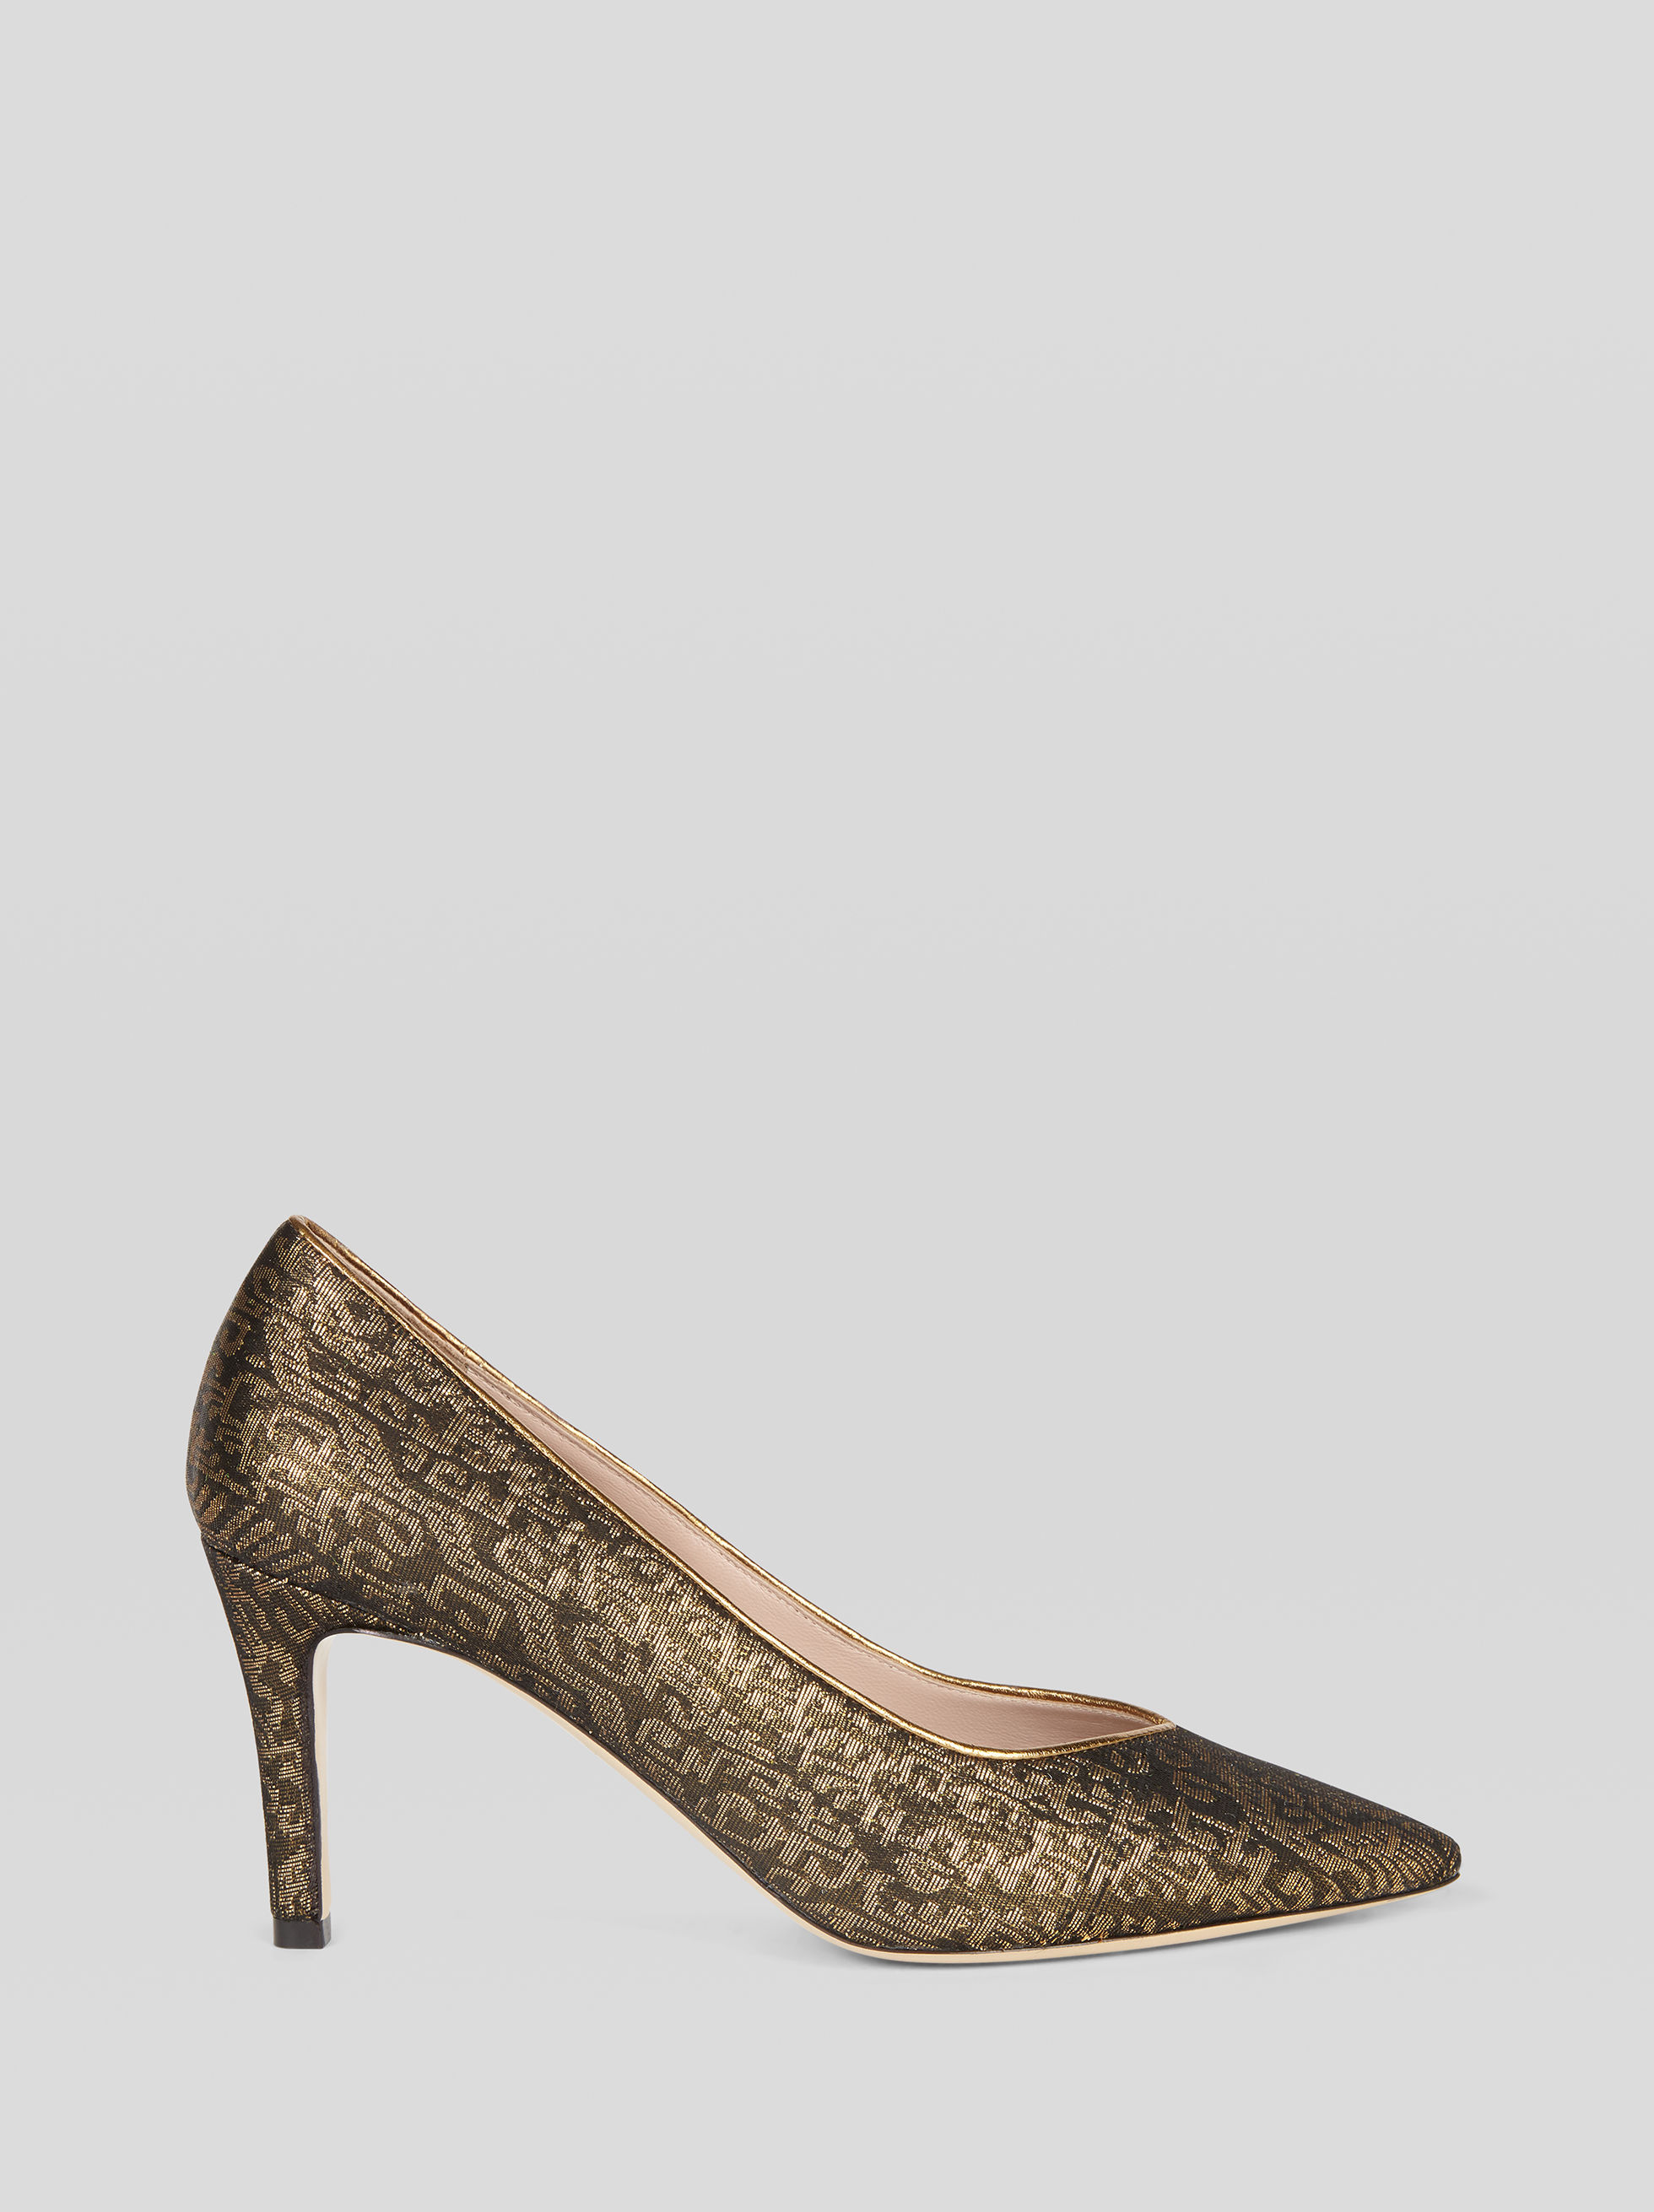 JACQUARD FABRIC COURT SHOE